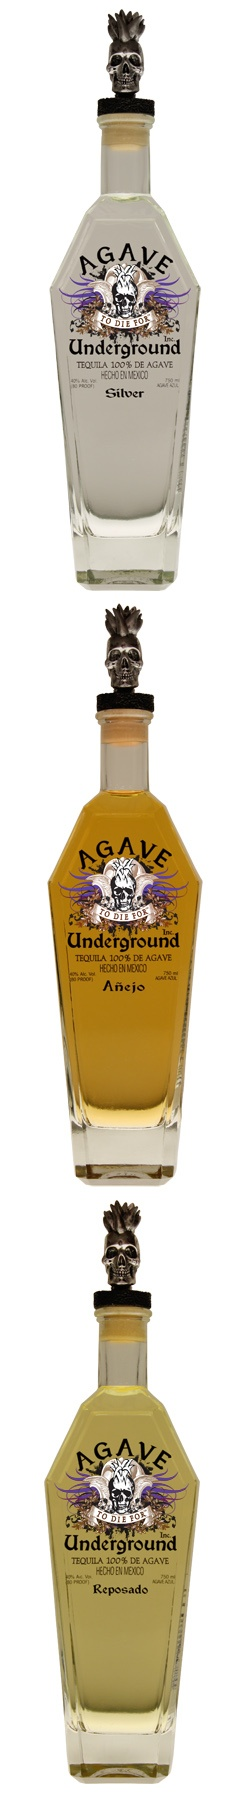 Agave Underground Tequilas  (with flaming skull head stoppers)